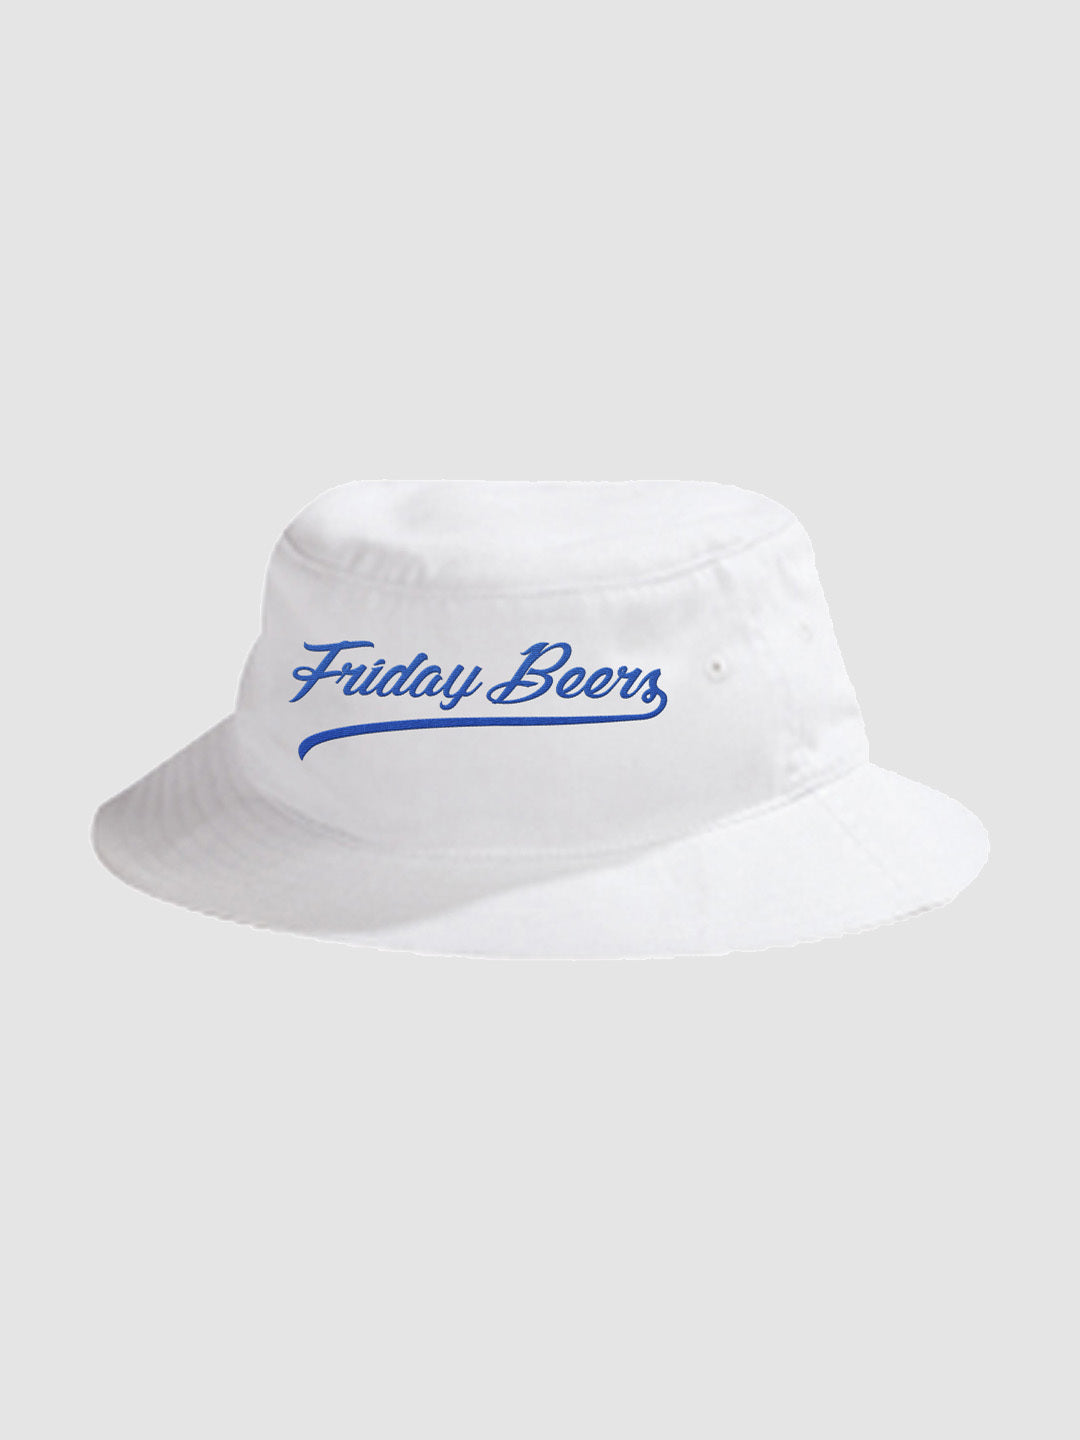 Friday Beers Bucket Hat